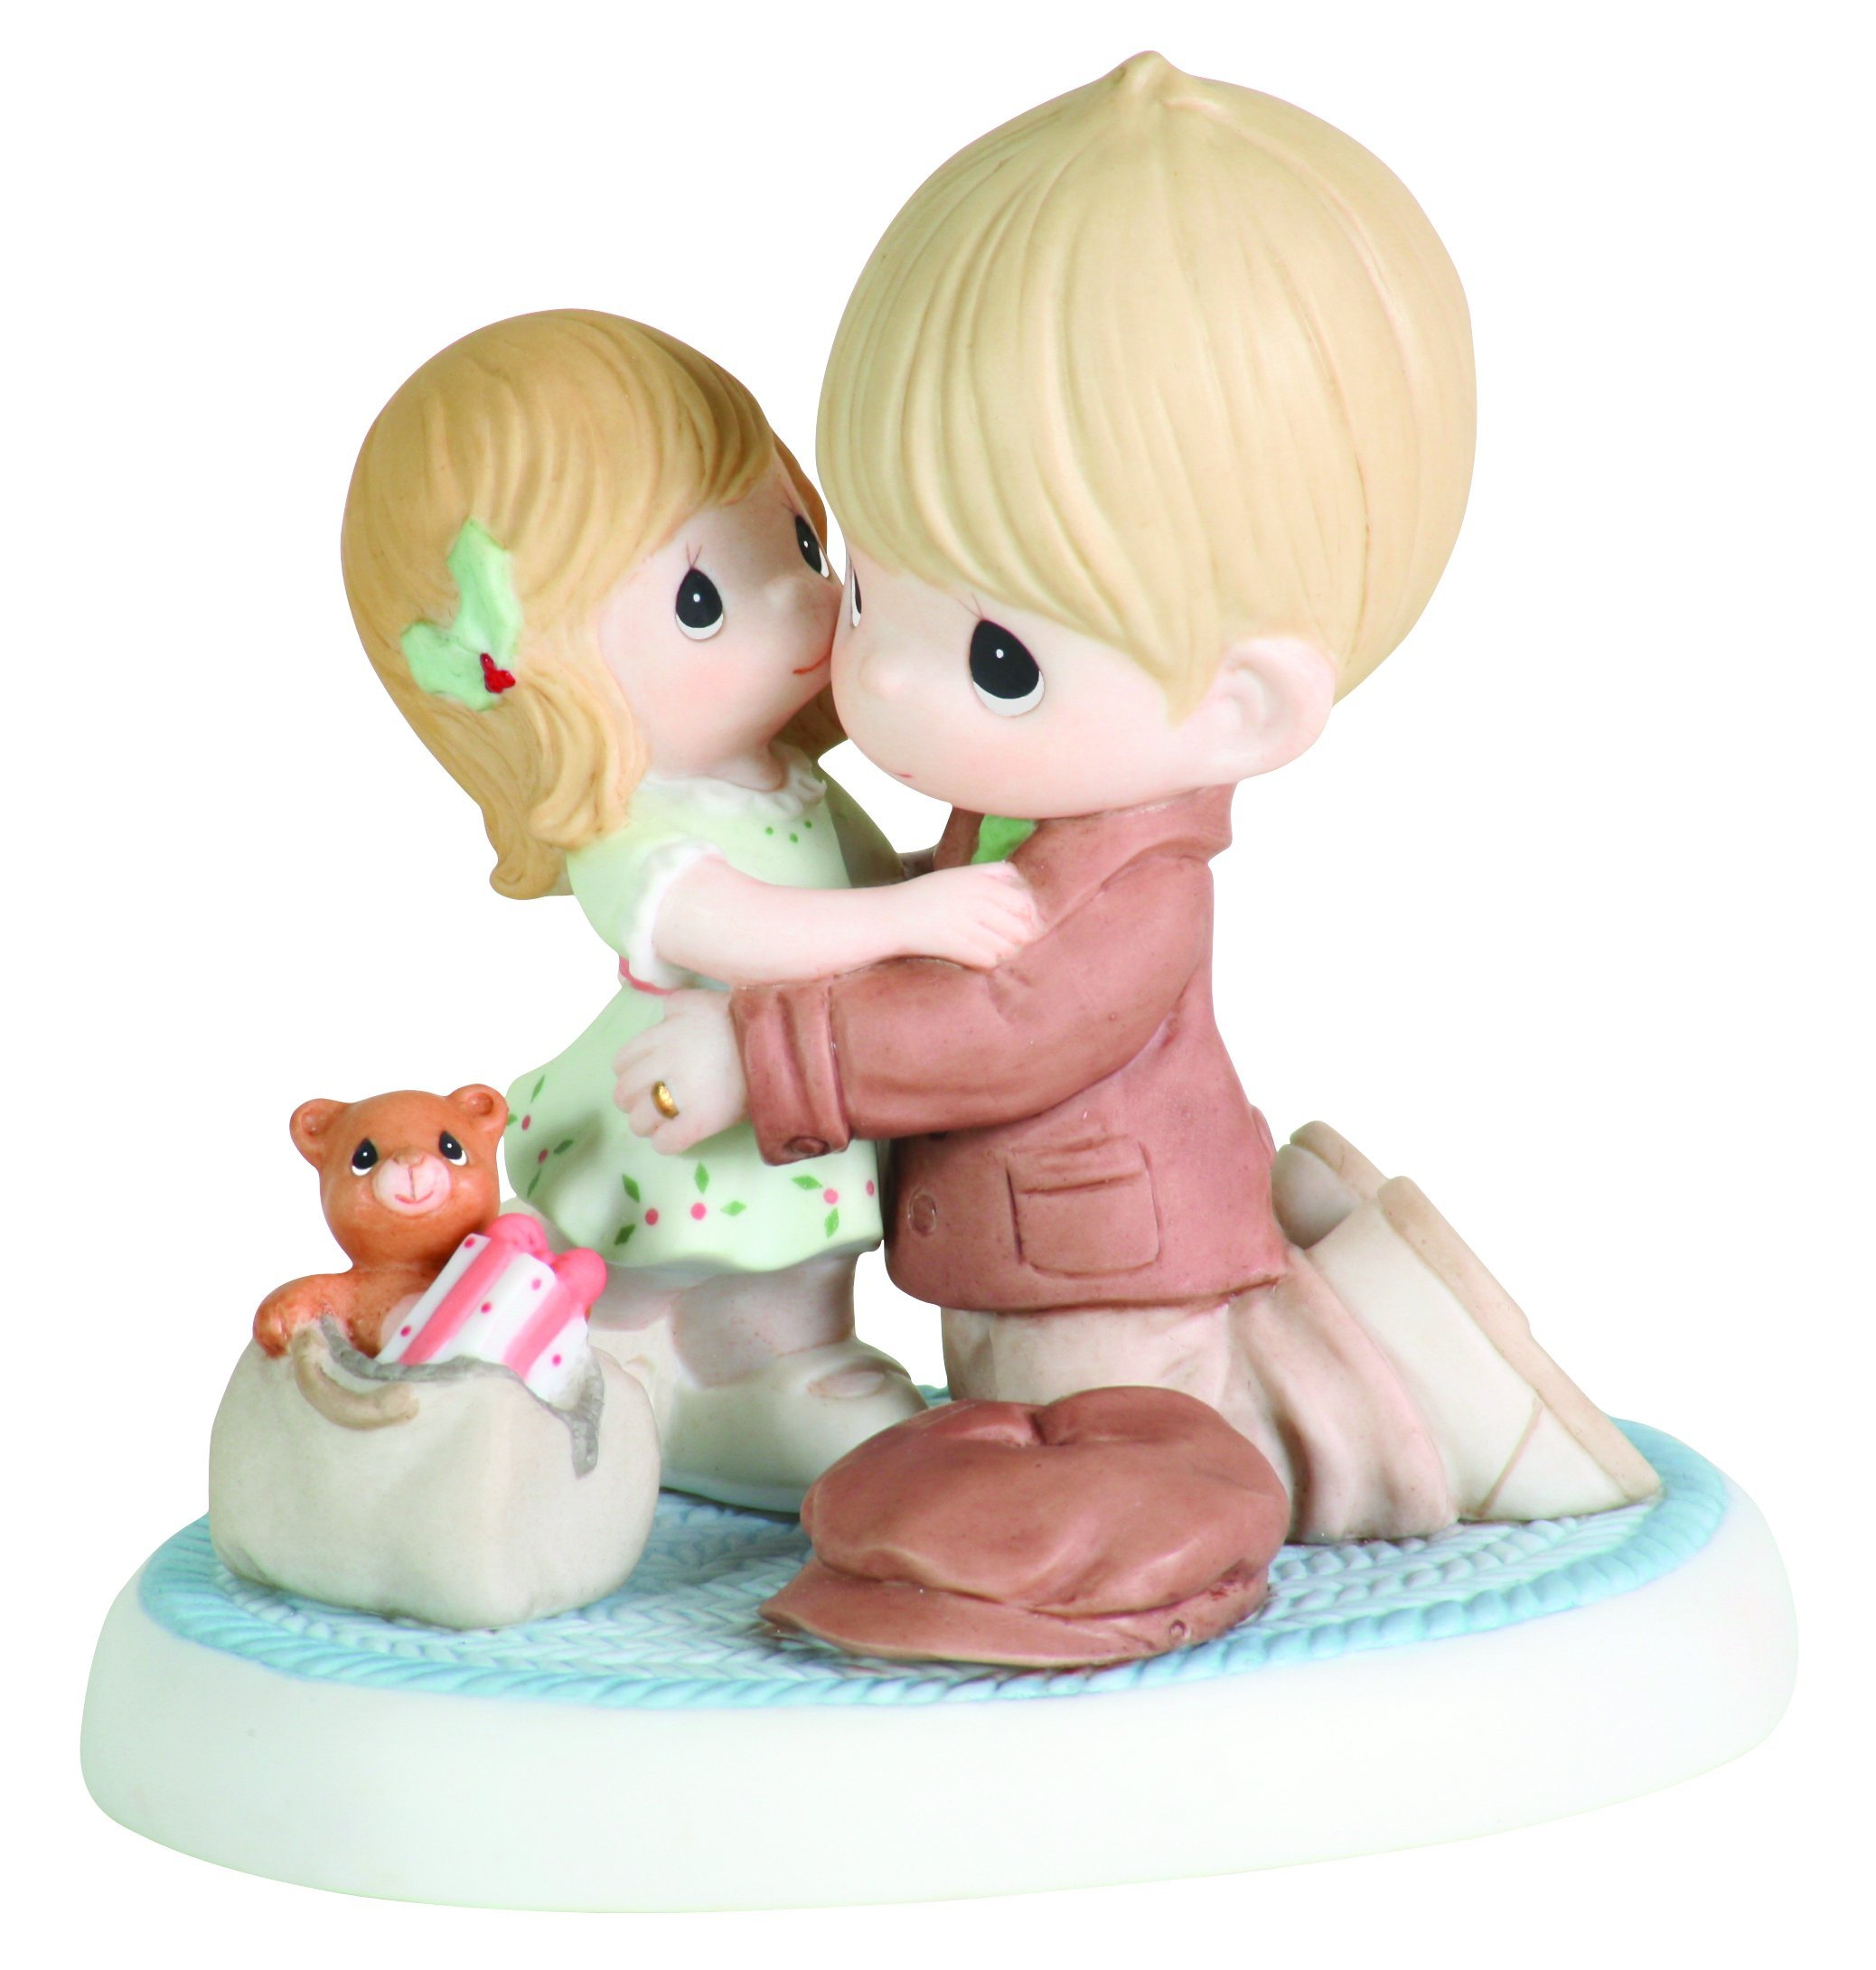 Precious Moments Dad And Daughter Hugging Figurine I'll Be Home for Christmas